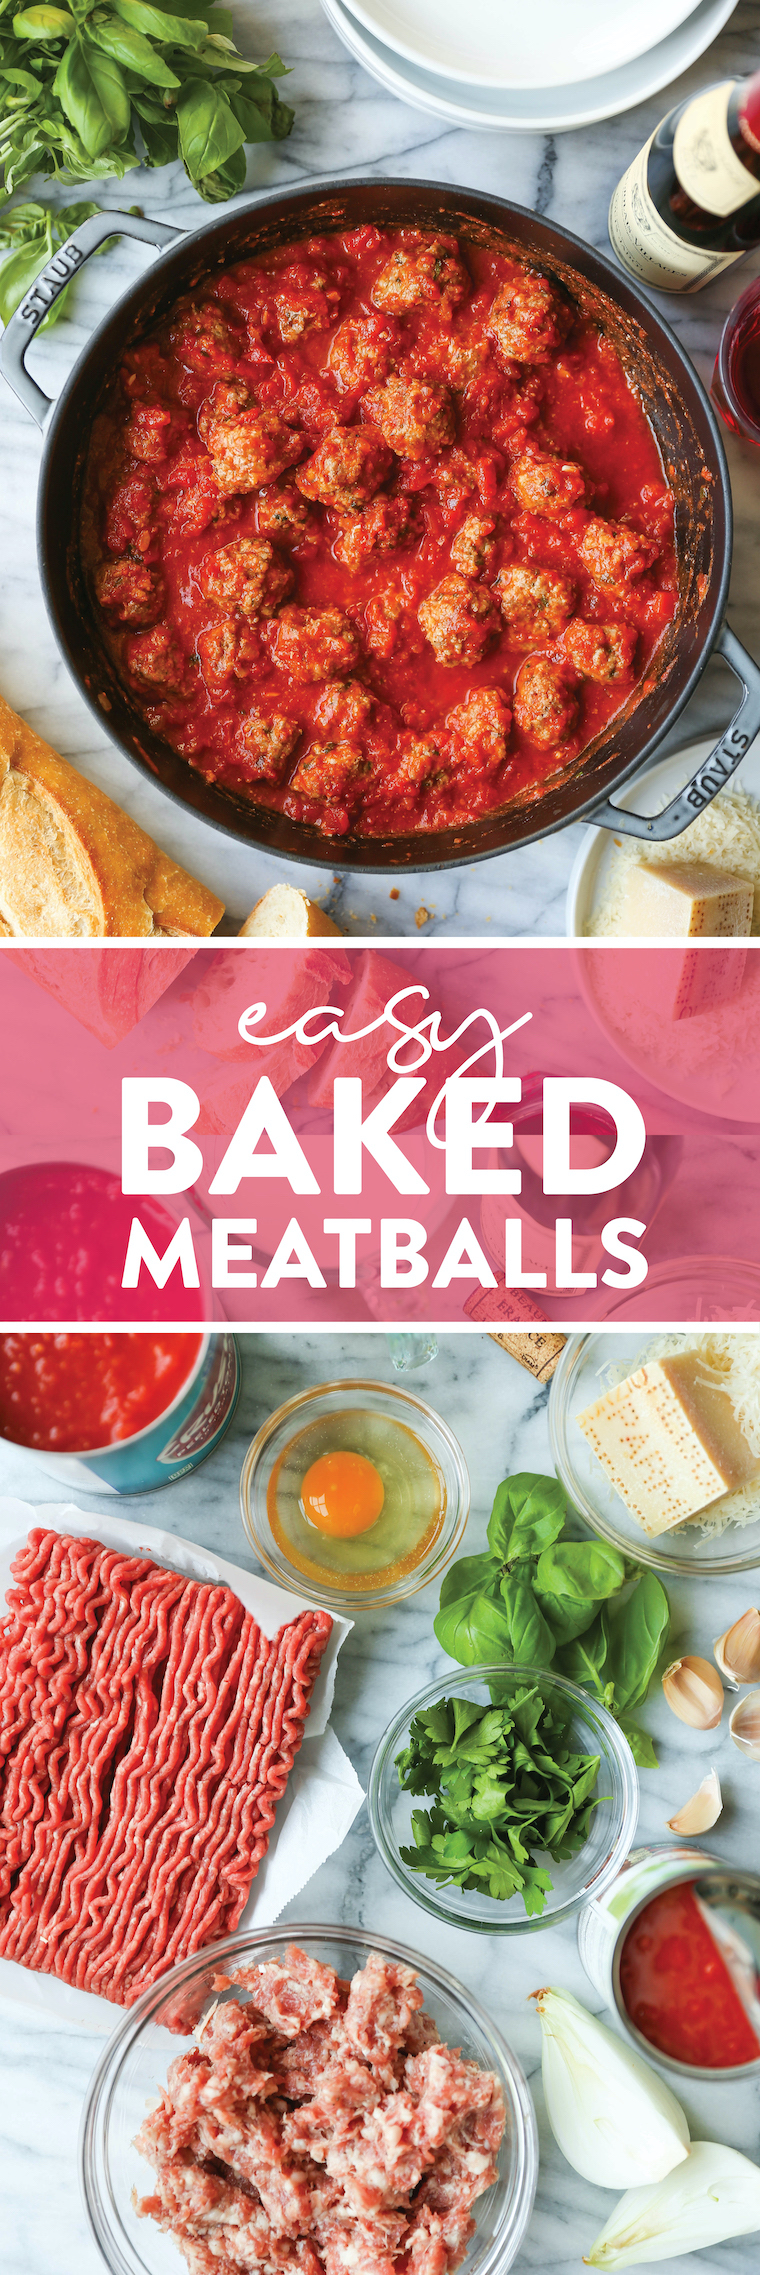 Easy Baked Meatballs - The ONLY meatball recipe you need! The meatballs come out so perfect and so tender. Serve on pasta, polenta, or subs!